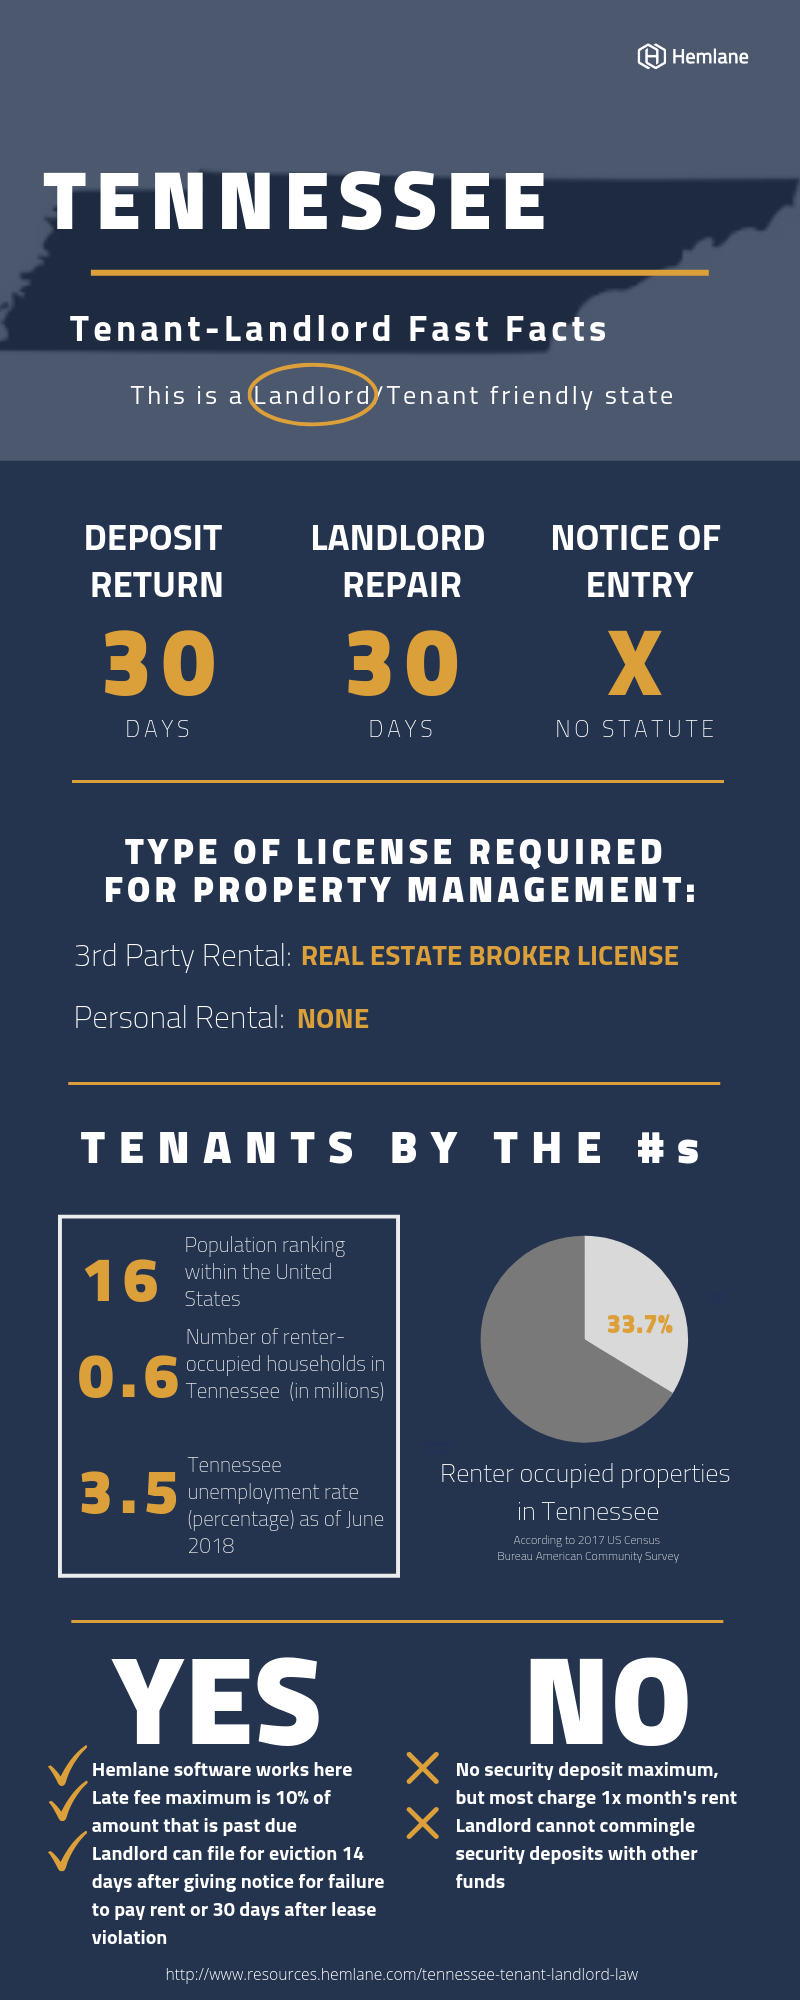 Tennessee-Tenant-Landlord-Law-Fast-Facts